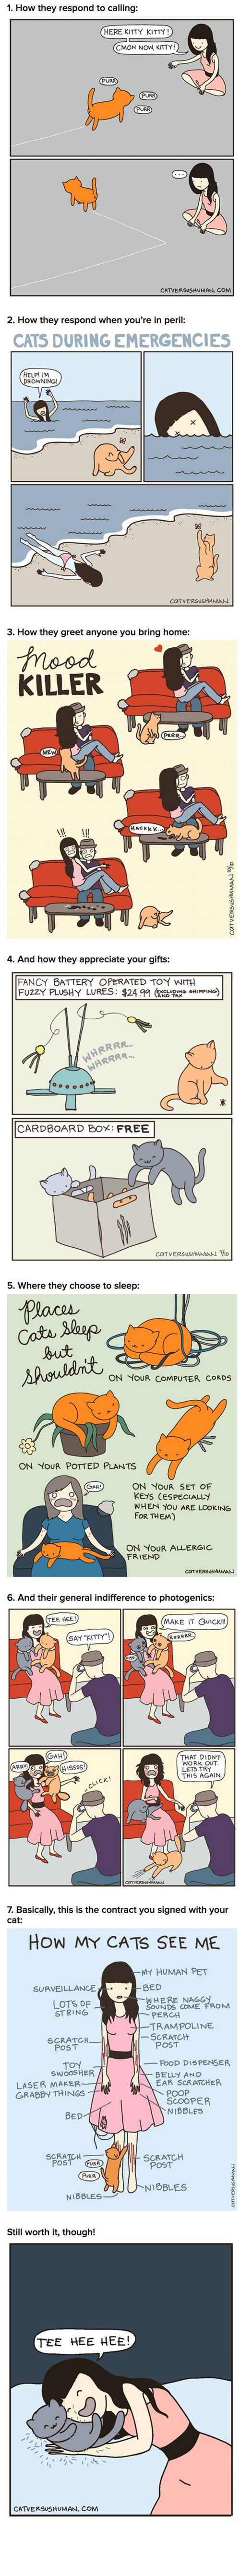 list,Cats,web comics